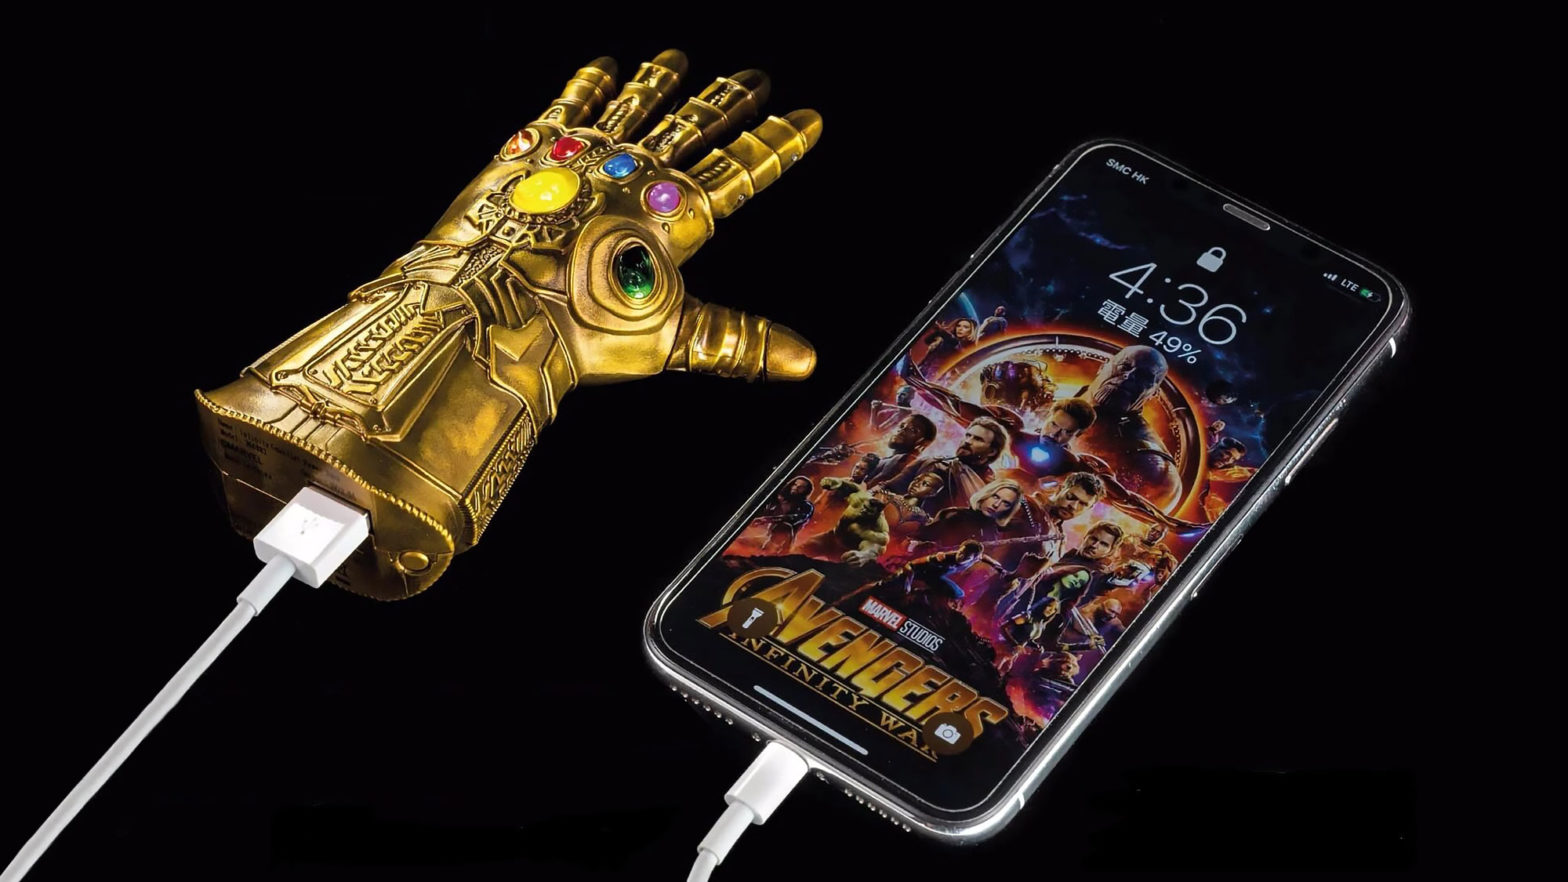 Avengers: Endgame Infinity Gauntlet Power Bank